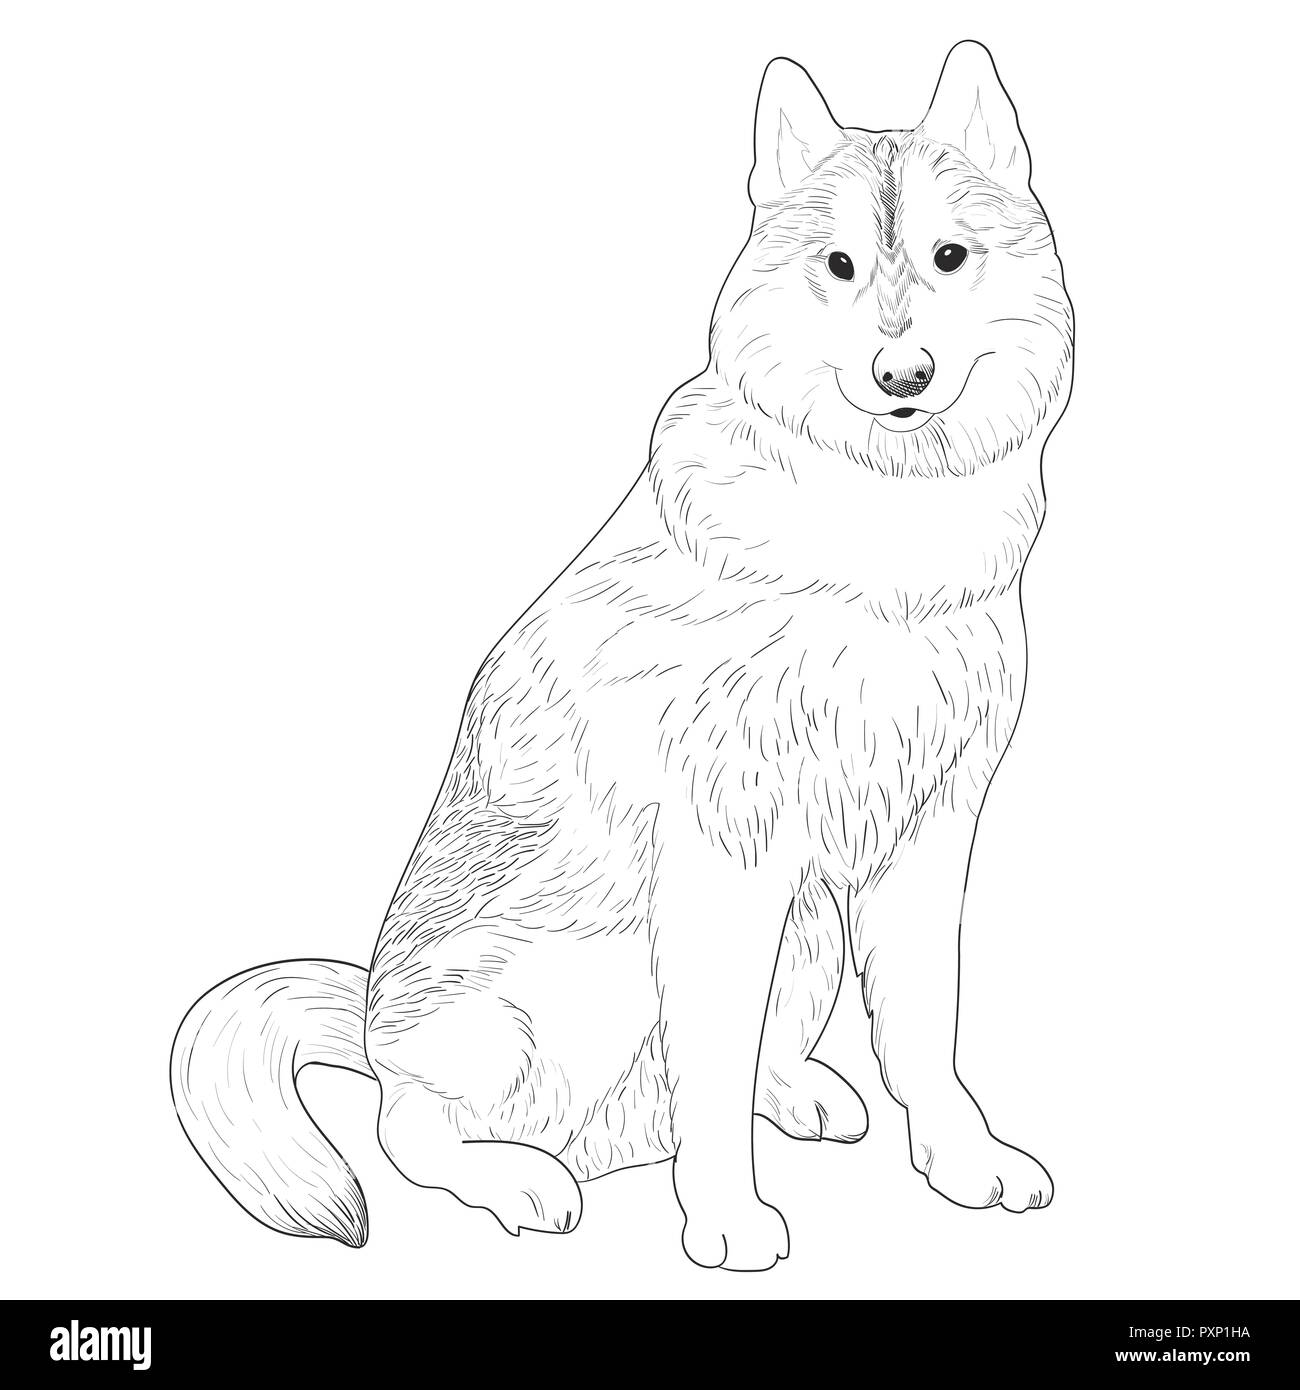 Husky hand drawn sketch. Purebred dog sitting isolated on white background. - Stock Vector